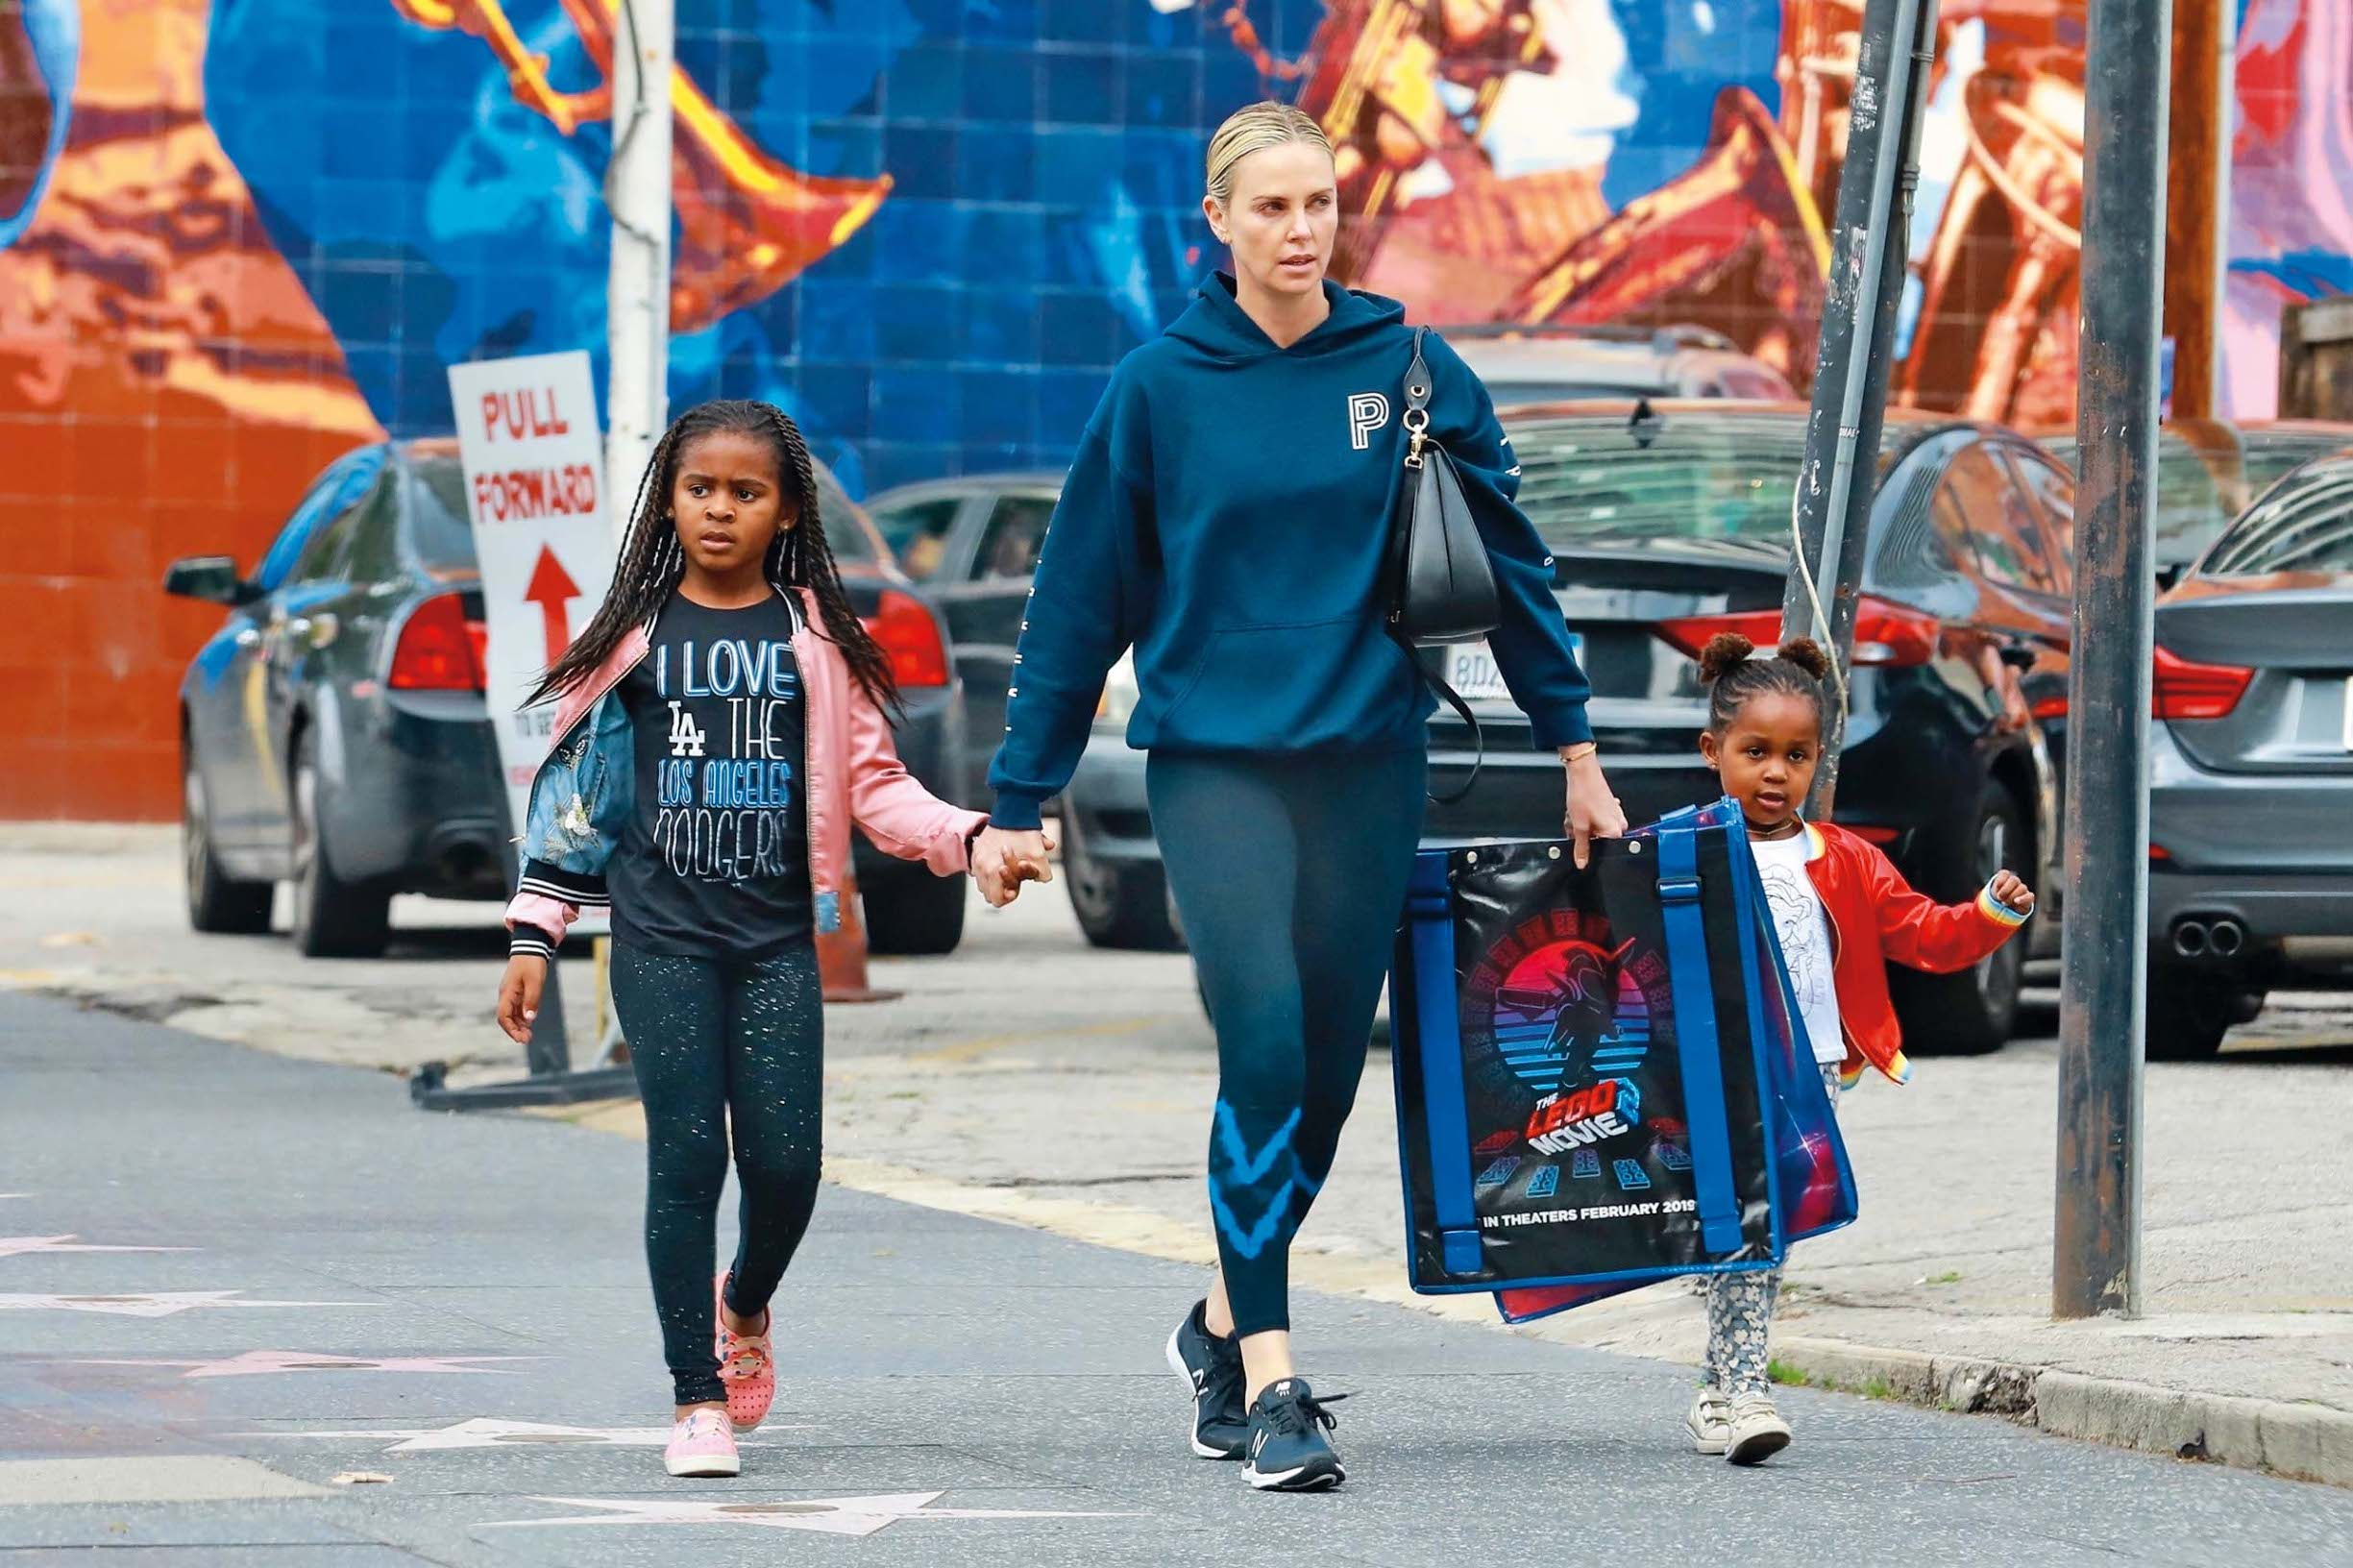 Hollywood, CA  - *EXCLUSIVE*  - Actress, Charlize Theron, is joined by her kids, Jackson and August Theron, for a trip to the premiere of the Lego Movie 2 in Los Angeles. The family step out in casual wear sporting hoodies, bomber jackets, and sneakers.  Pictured: Charlize Theron, August Theron, Jackson Theron     *UK Clients - Pictures Containing Children Please Pixelate Face Prior To Publication*, Image: 411719601, License: Rights-managed, Restrictions: , Model Release: no, Credit line: SL, Terma / BACKGRID / Backgrid USA / Profimedia